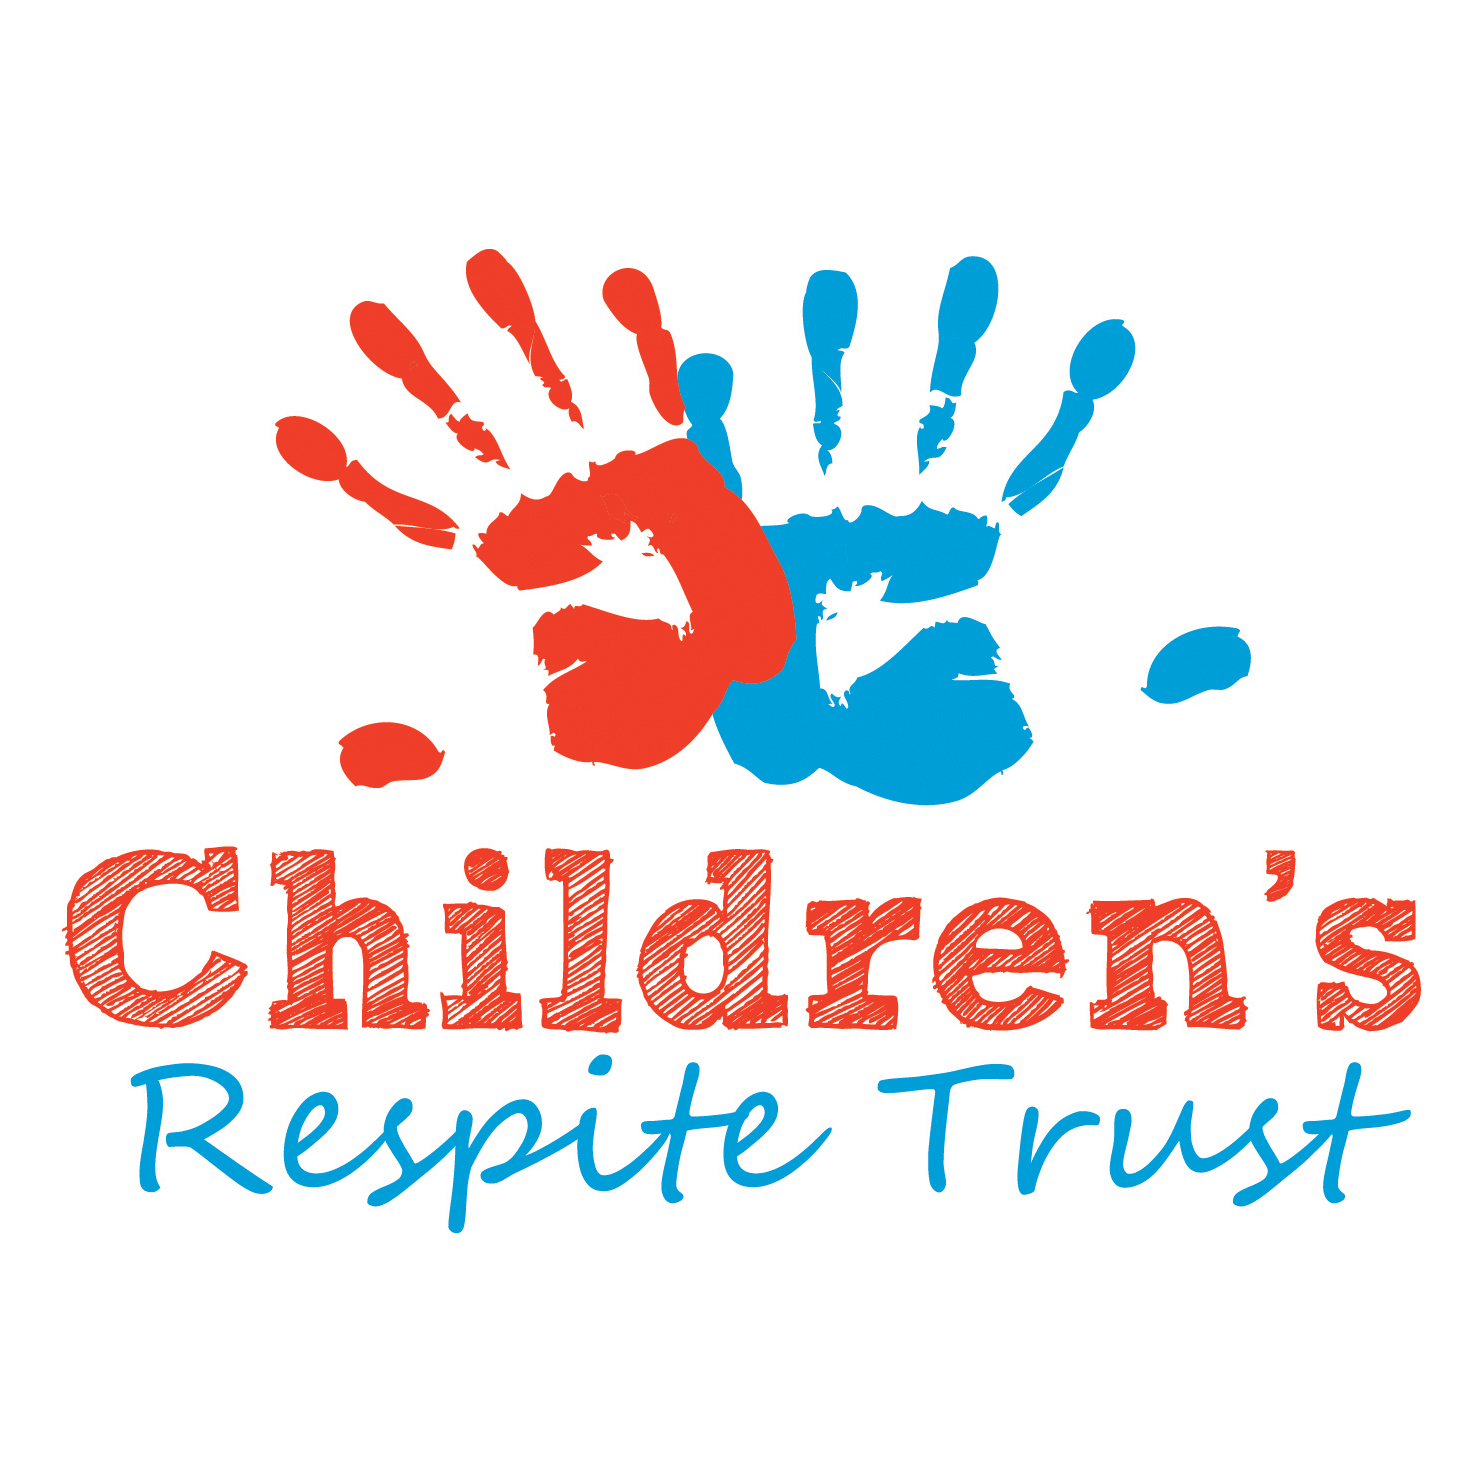 Hosted By Childrens Respite Trust